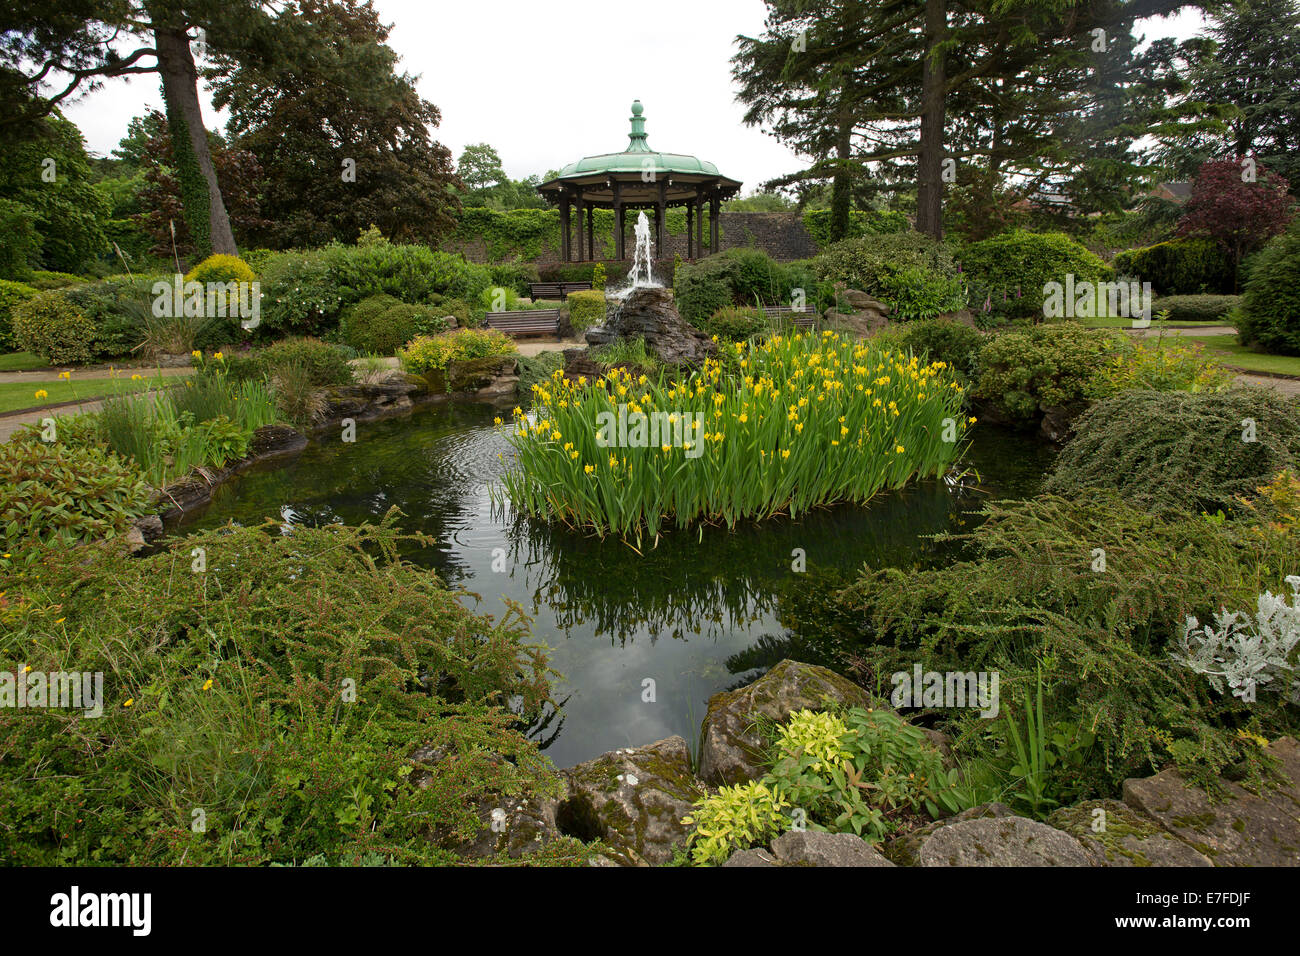 Park with bandstand, rock garden, trees, shrubs, and ornamental pond with fountain and flowering irises at village - Stock Image